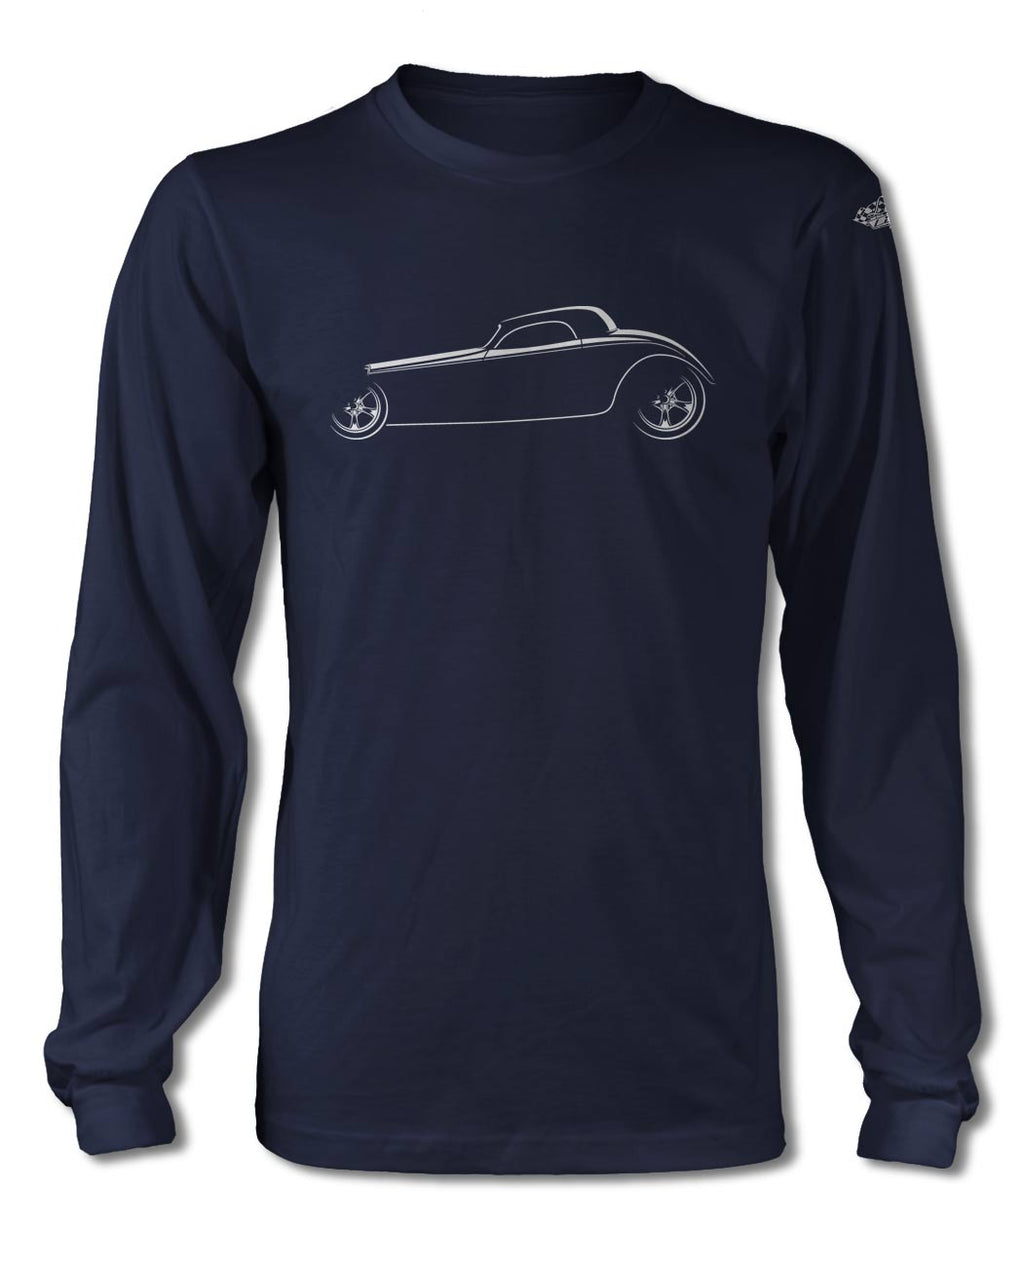 1934 Ford Coupe Hi Boy T-Shirt - Long Sleeves - Side View